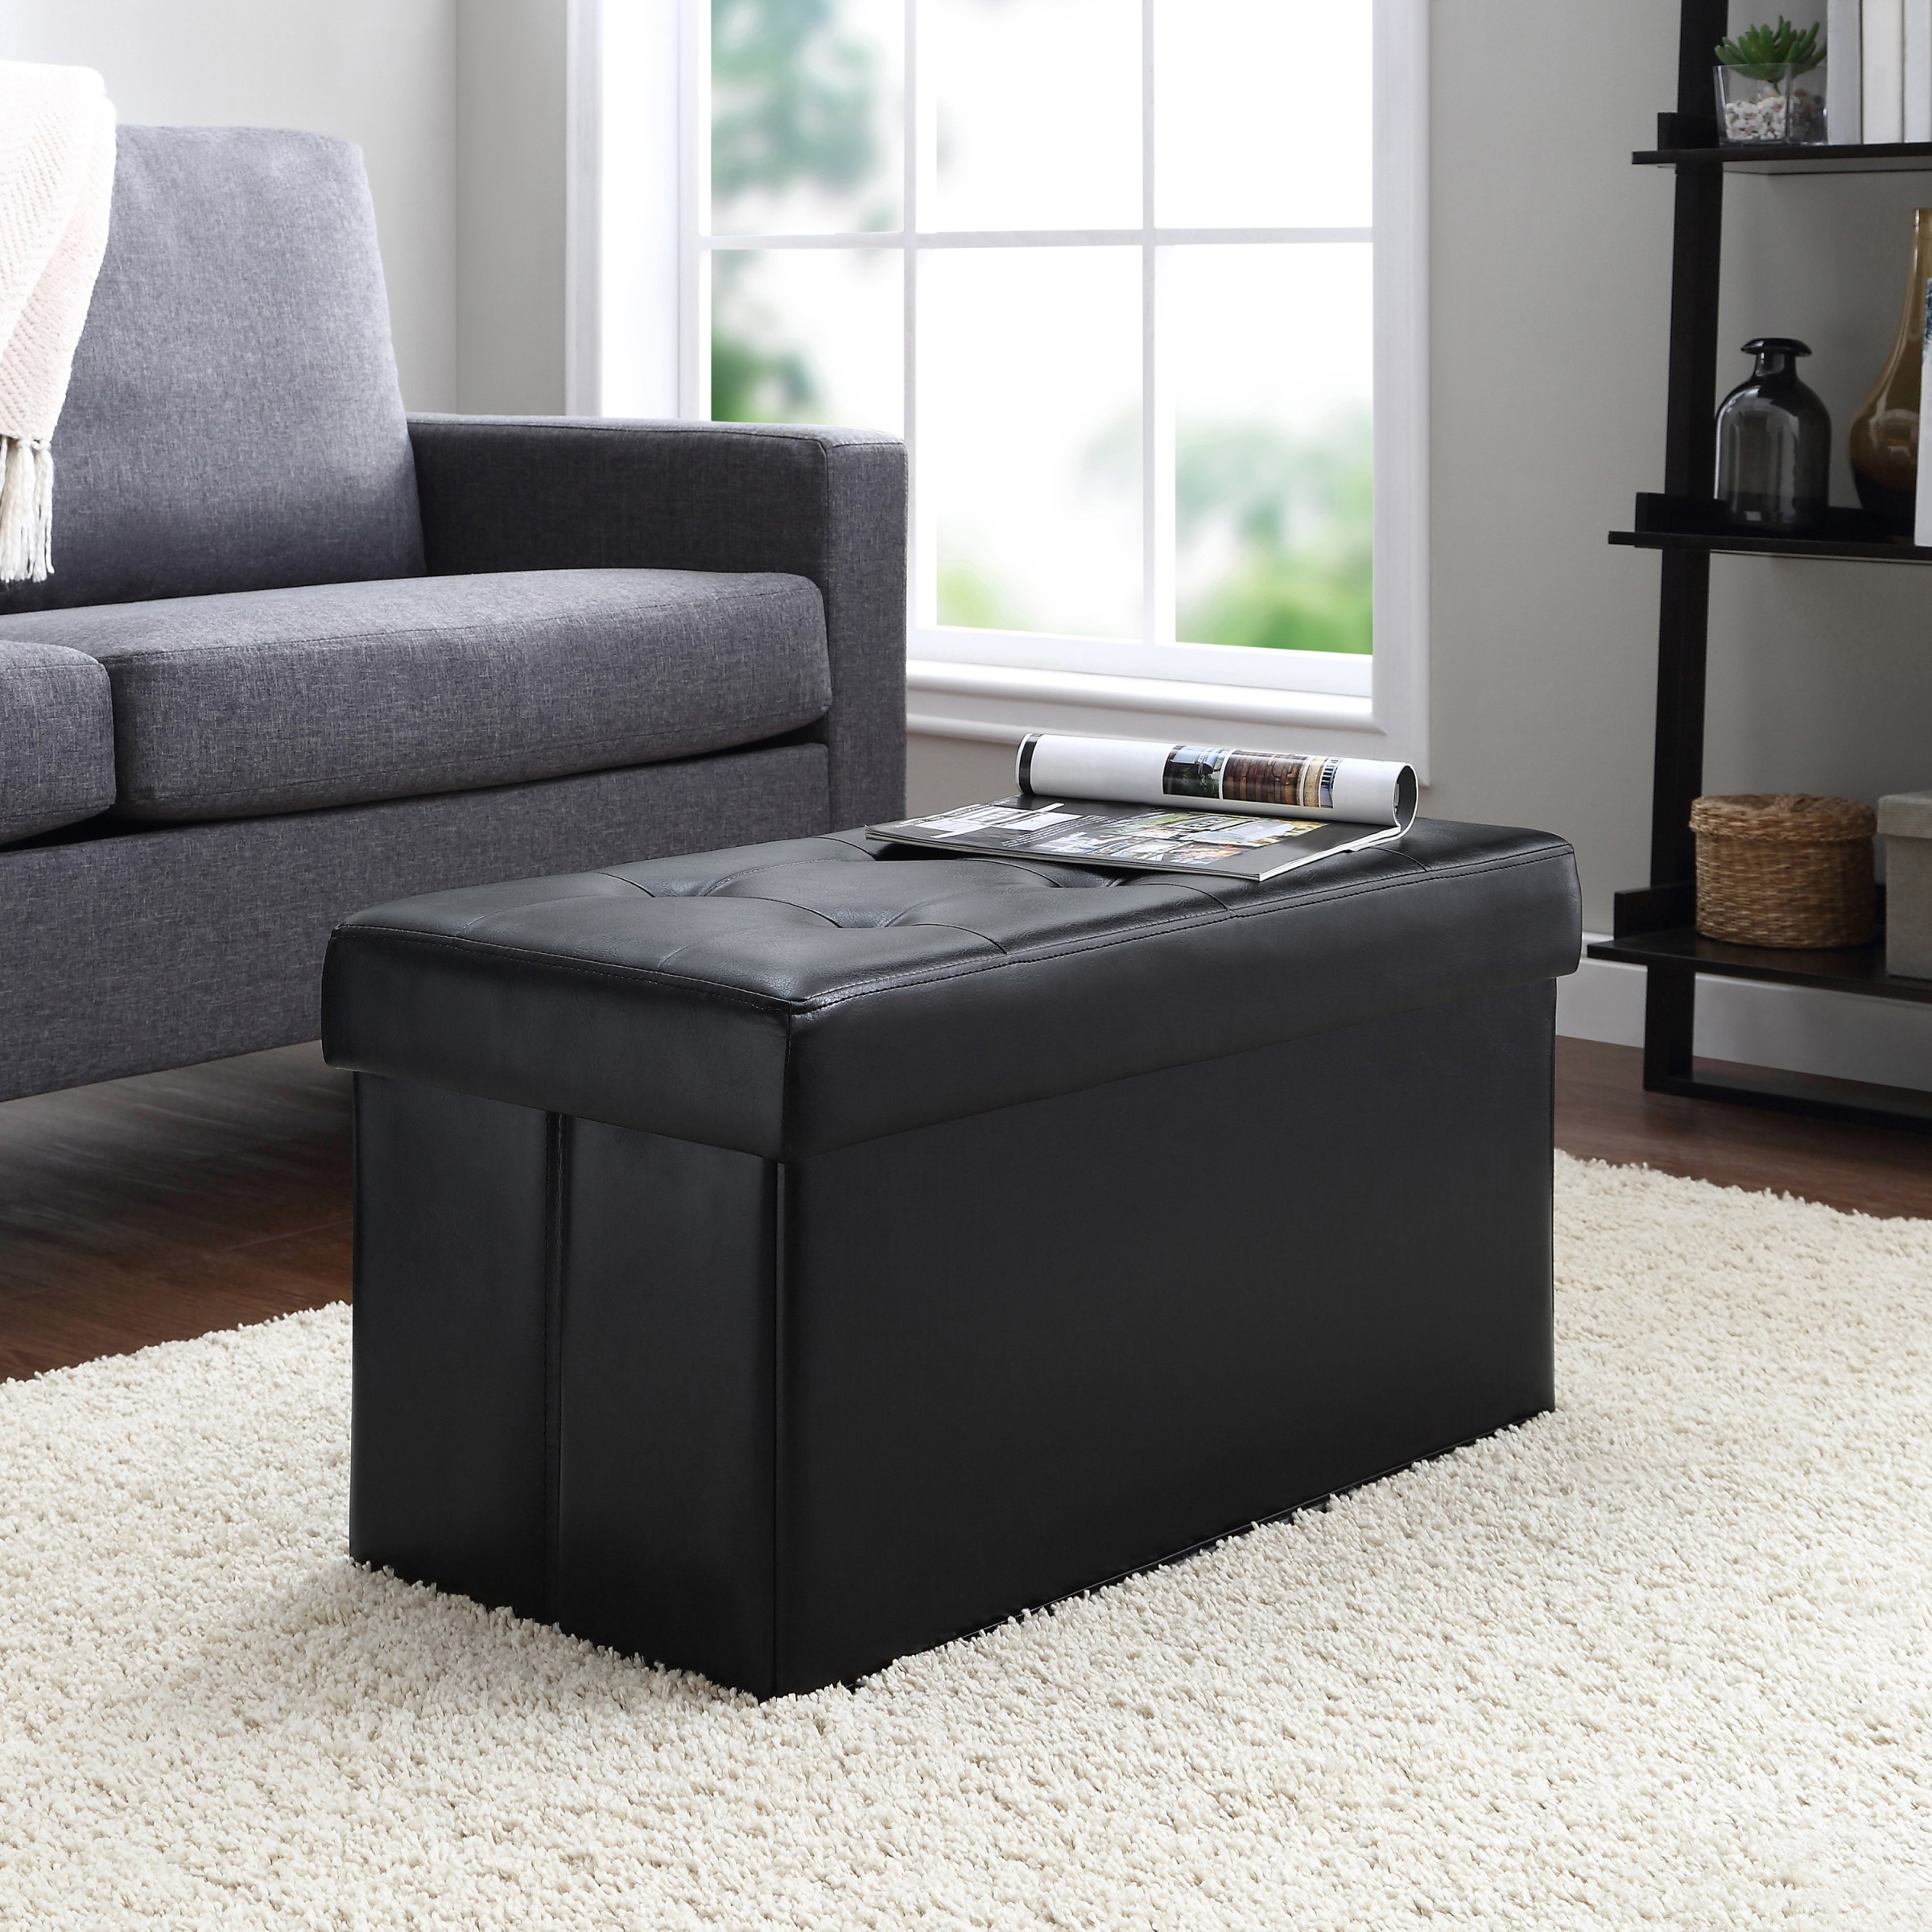 Incredible Mainstays Collapsible Storage Ottoman Quilted Black Faux Leather Walmart Com Ncnpc Chair Design For Home Ncnpcorg